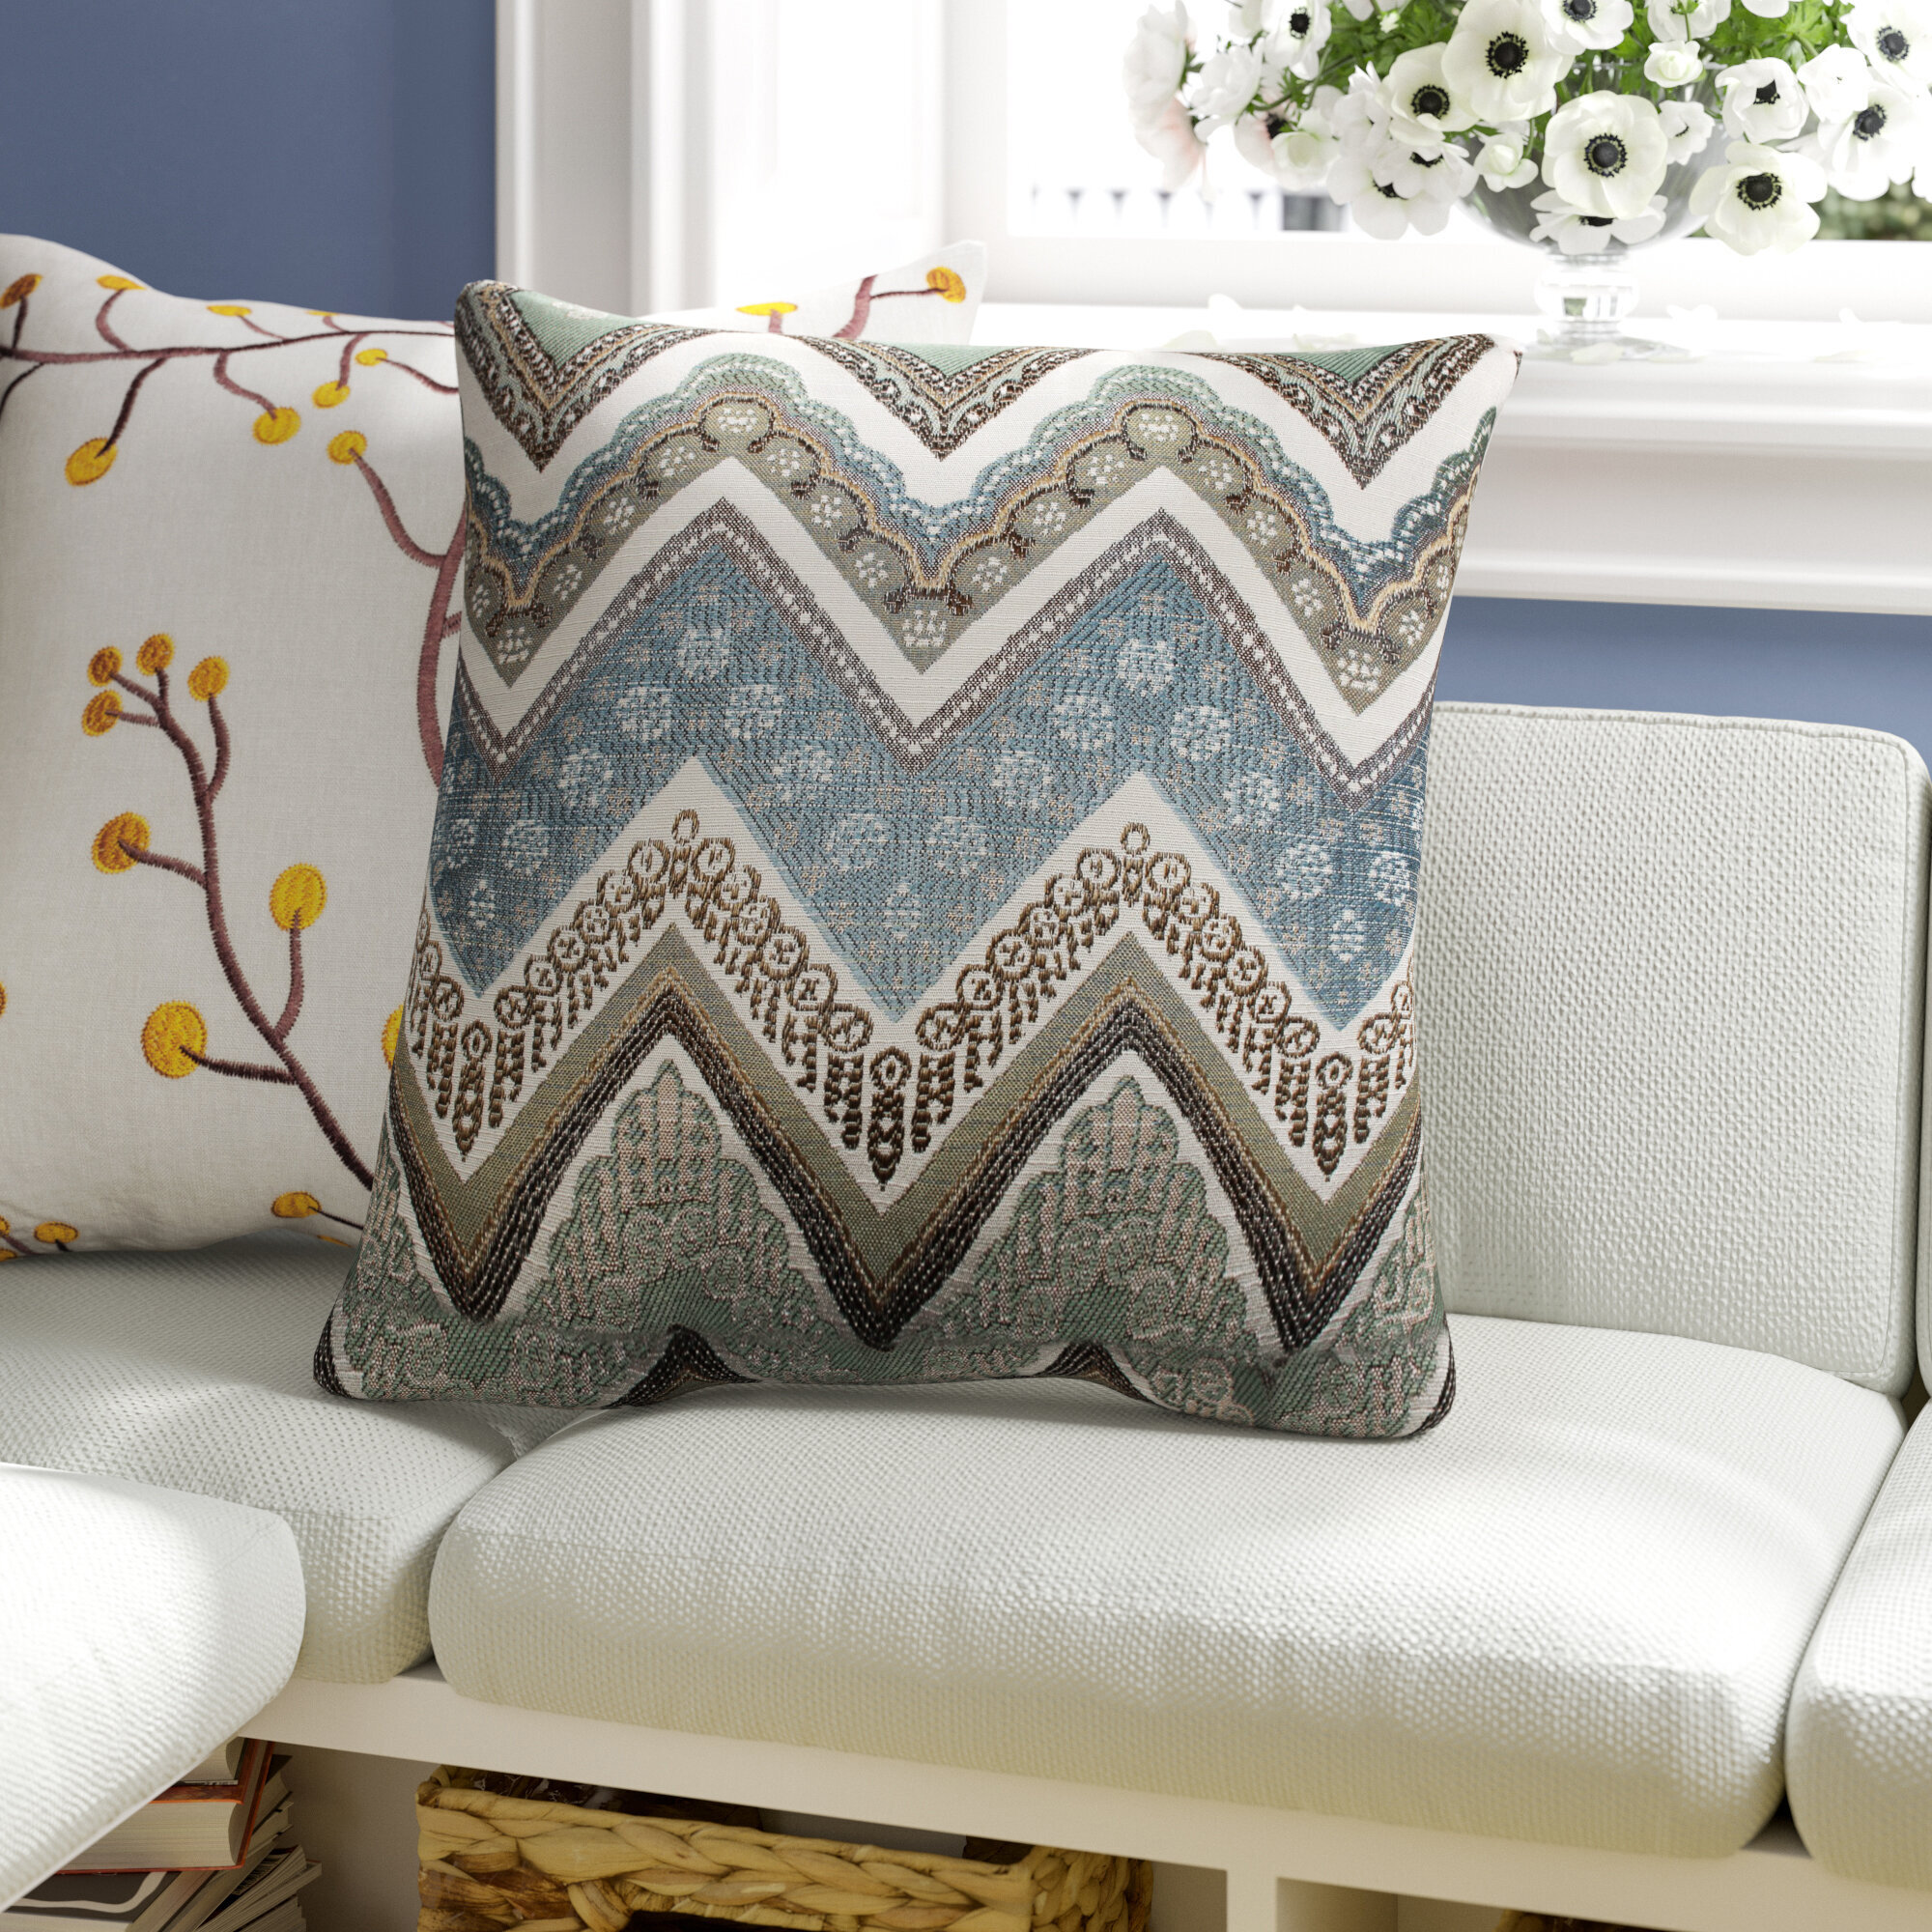 Bohemian Ivory Cream Throw Pillows You Ll Love In 2021 Wayfair